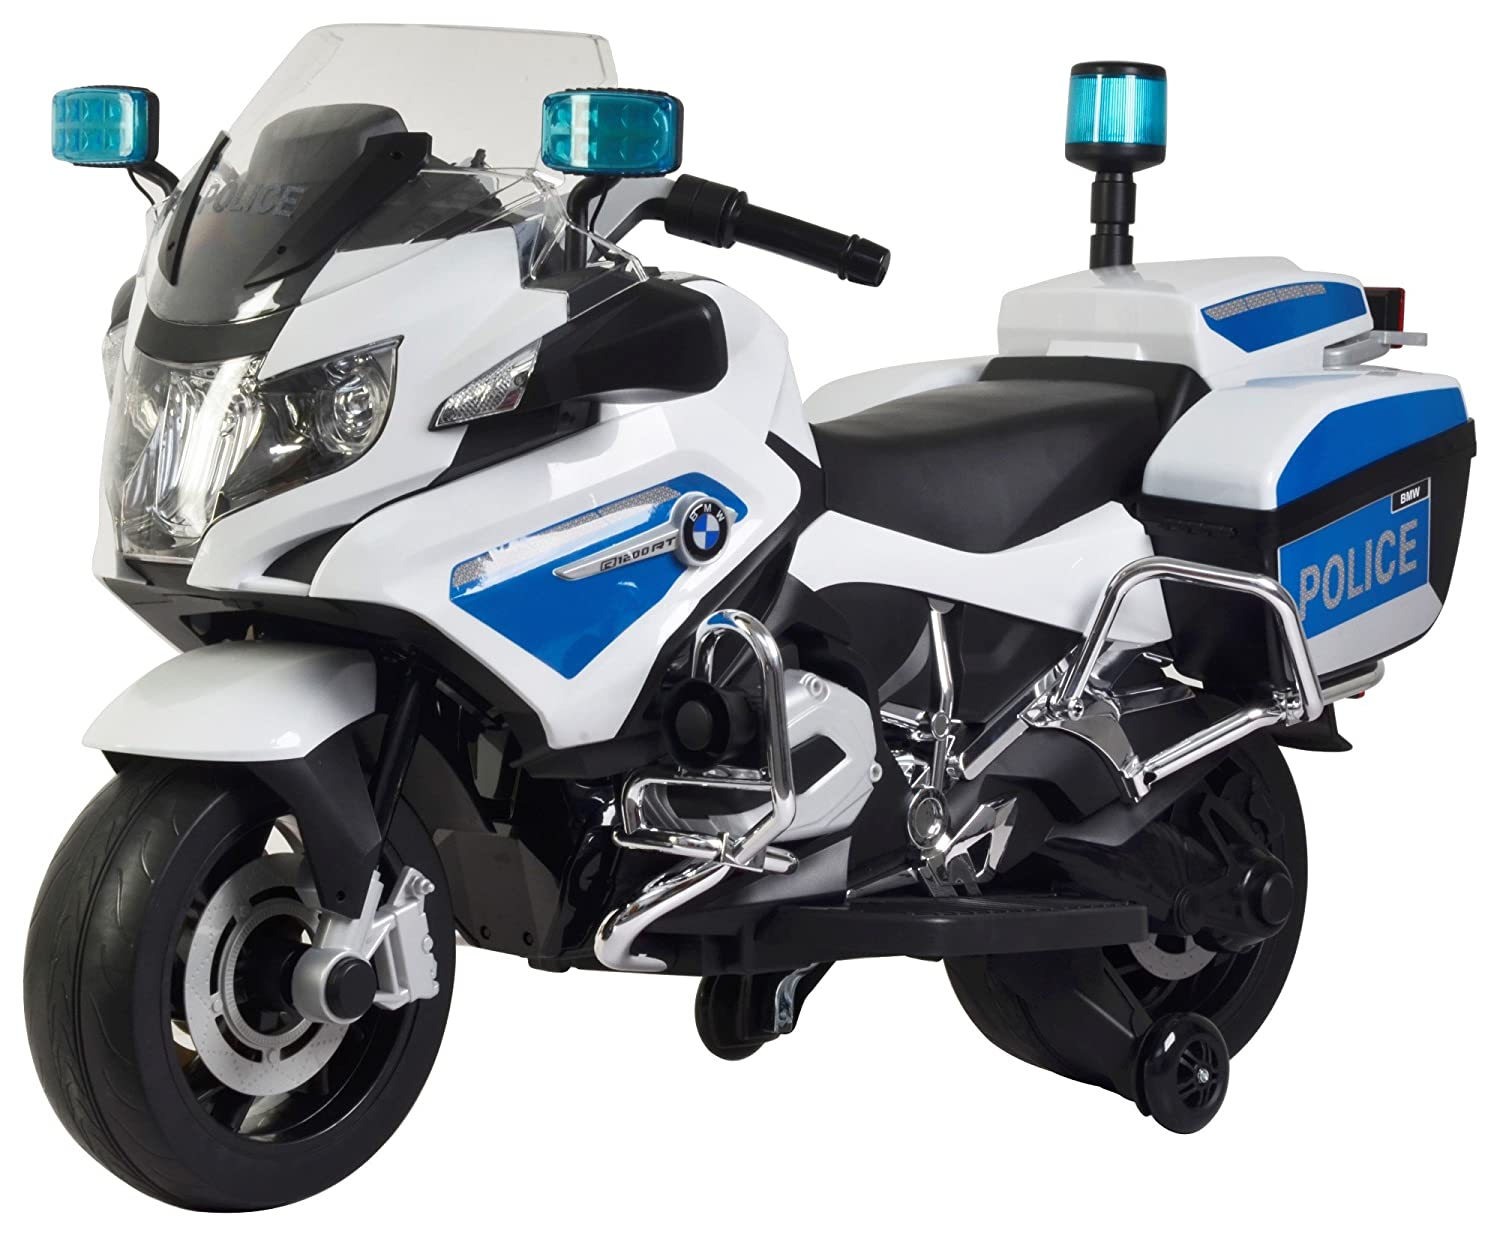 Toy House Officially Licensed Bmw R 1200 Rt Police Motorcycle Rechargeable Battery Operated Ride On Bike For Kids 2 To 7 White